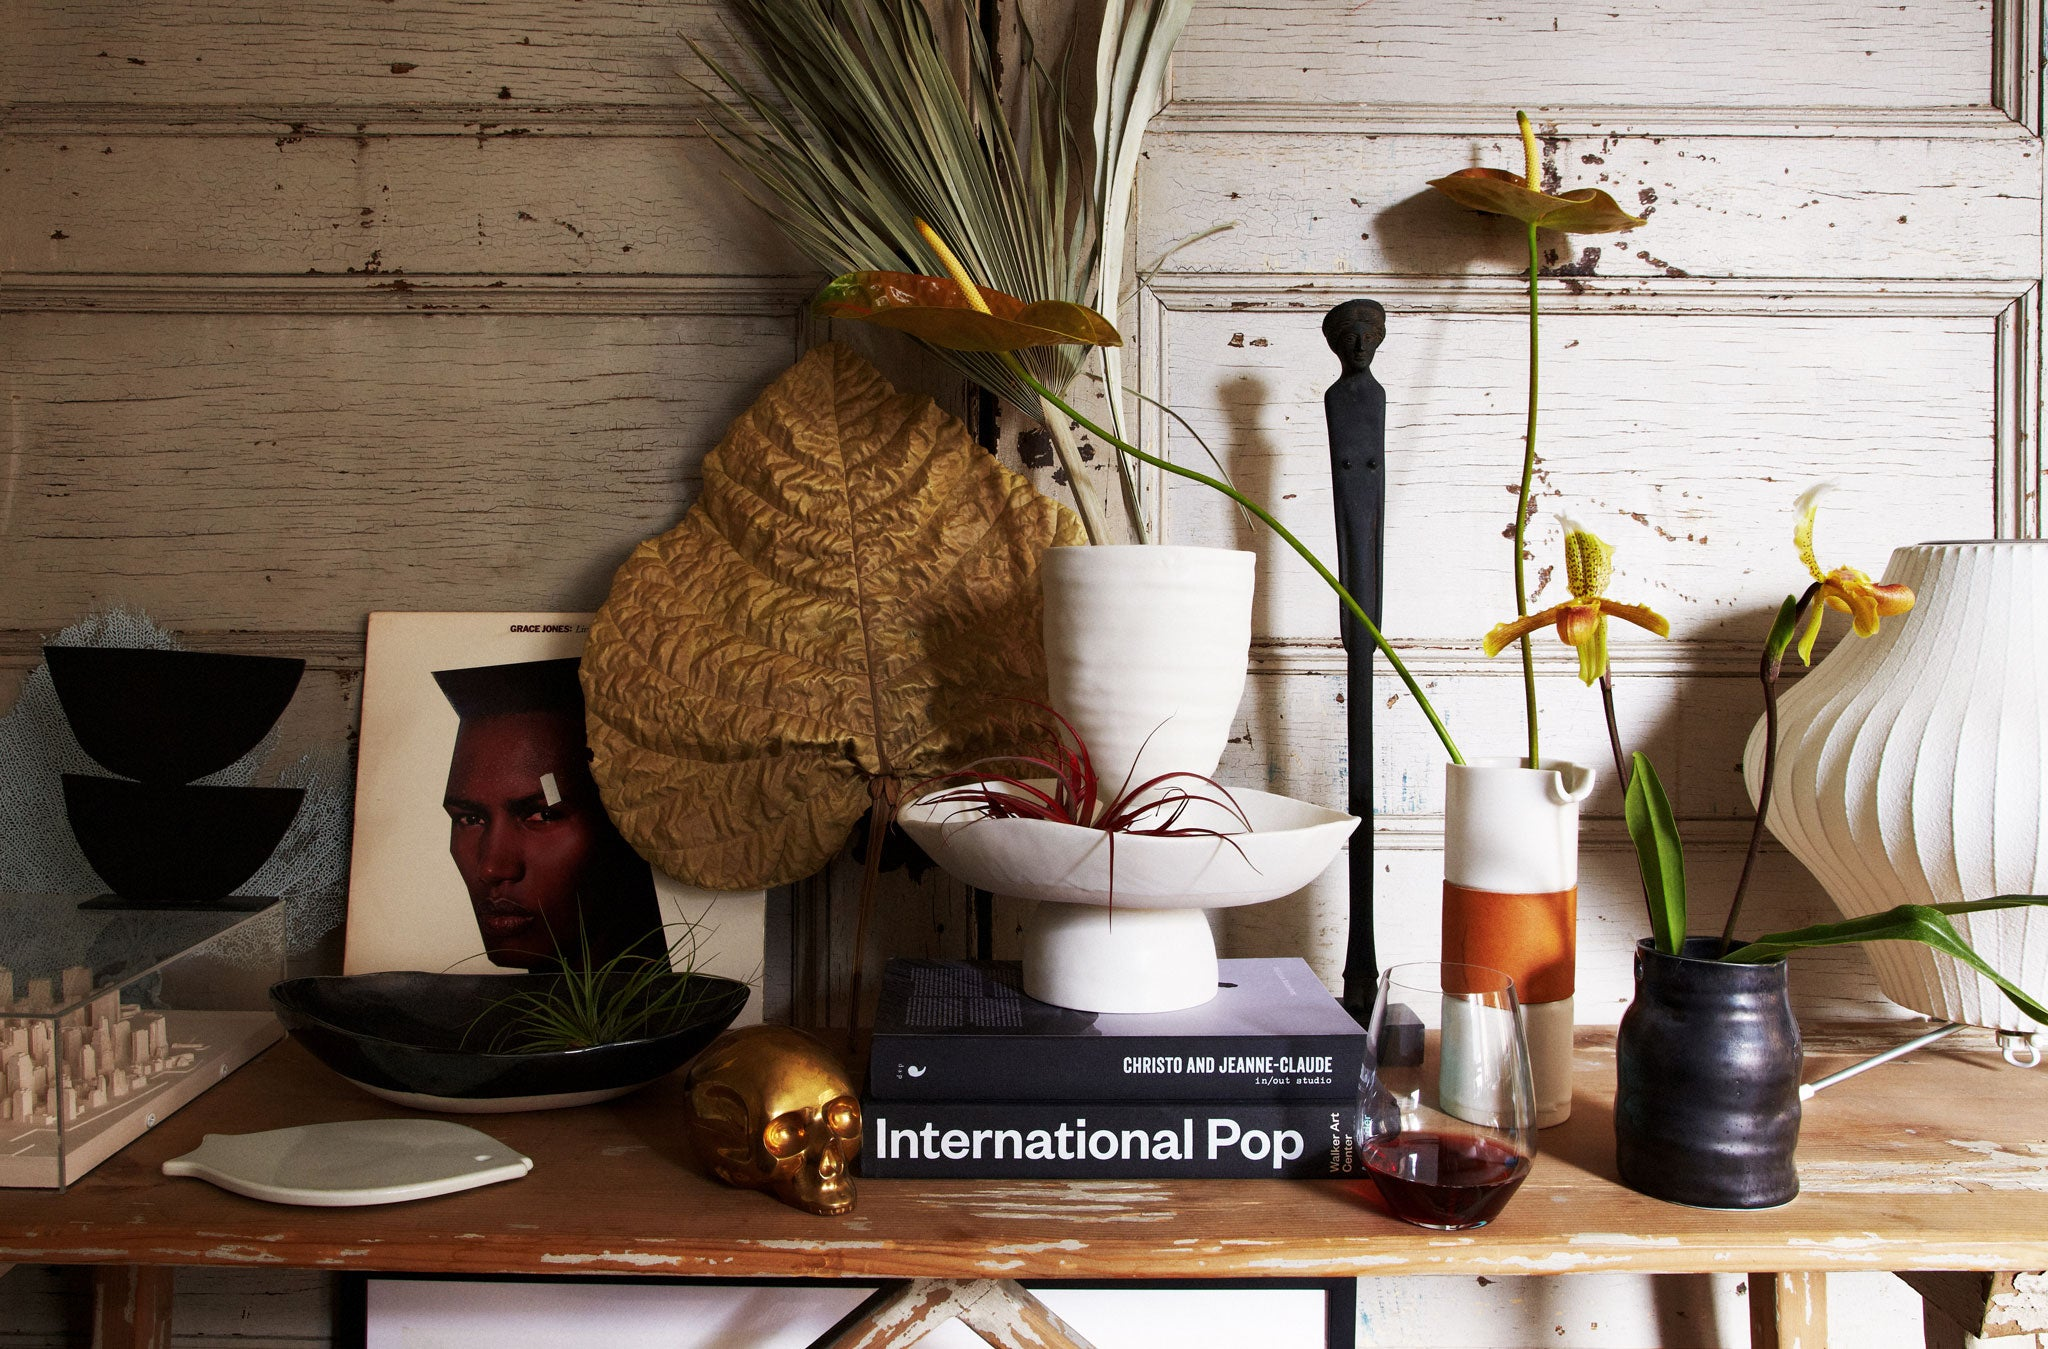 DBO HOME ceramic vases and bowls on wooden table with decorative leaves, flowers, books and art as styled by Marcus Hay